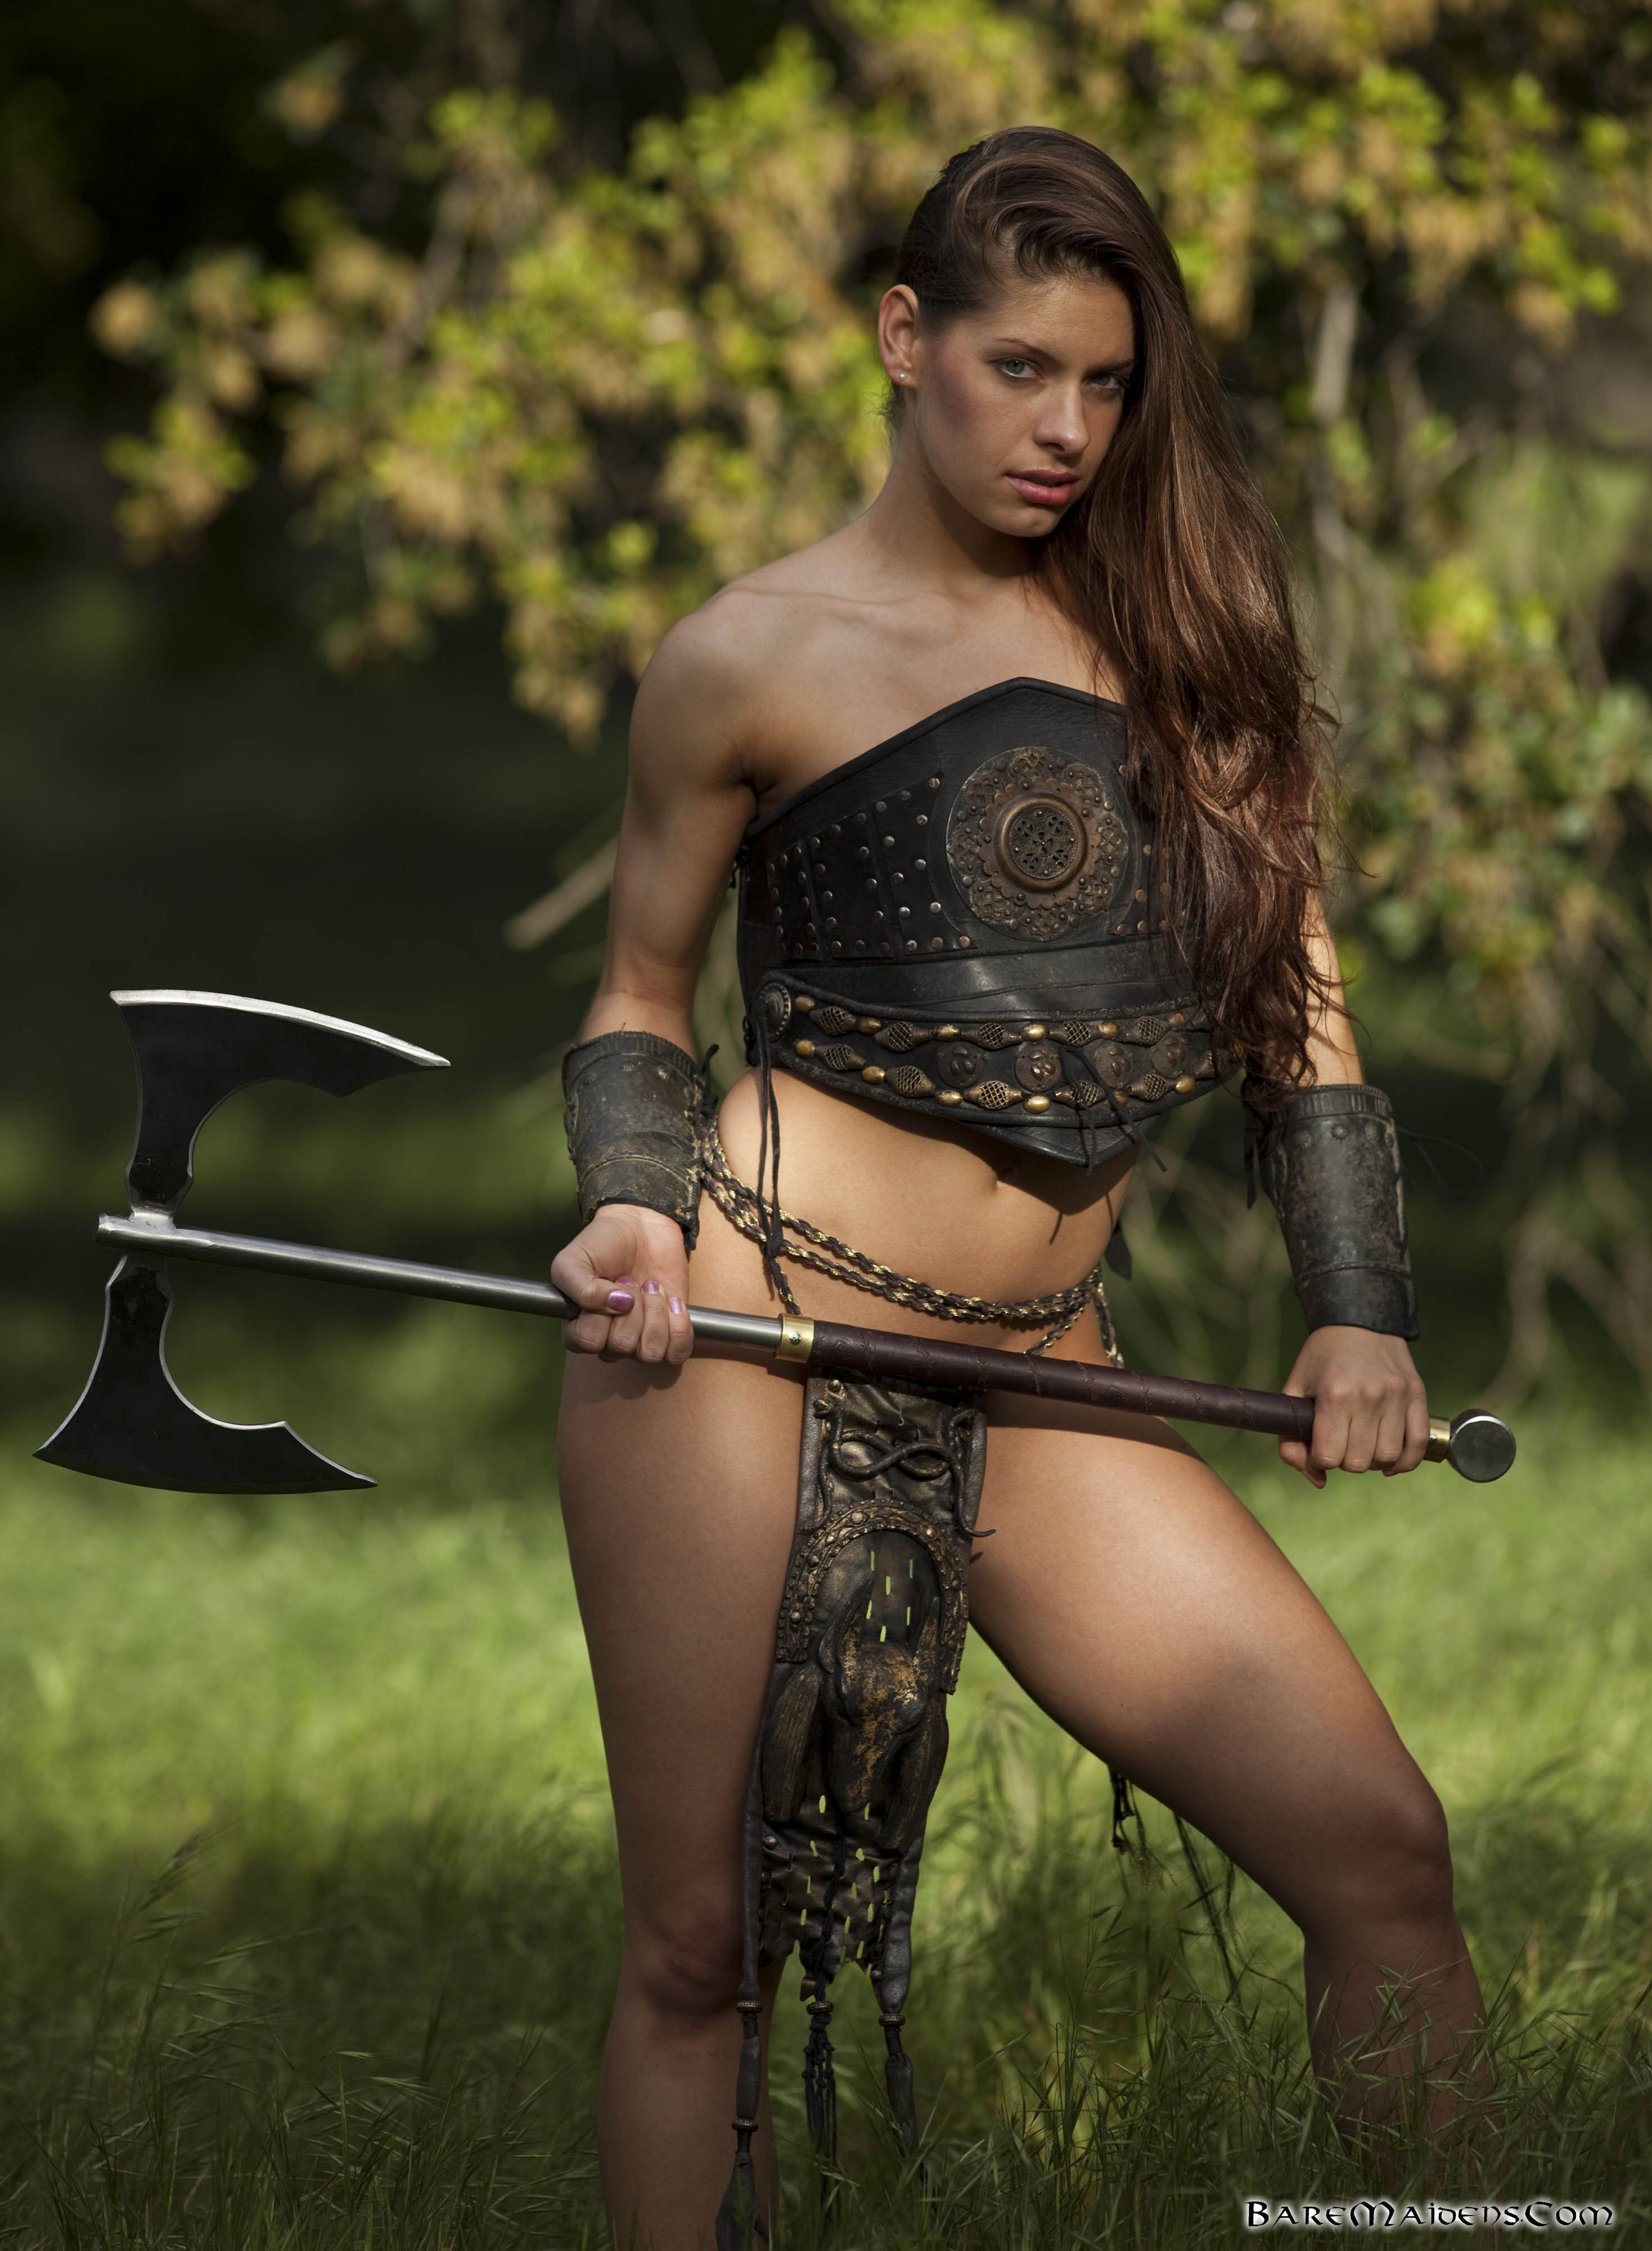 Naked woman with a sword